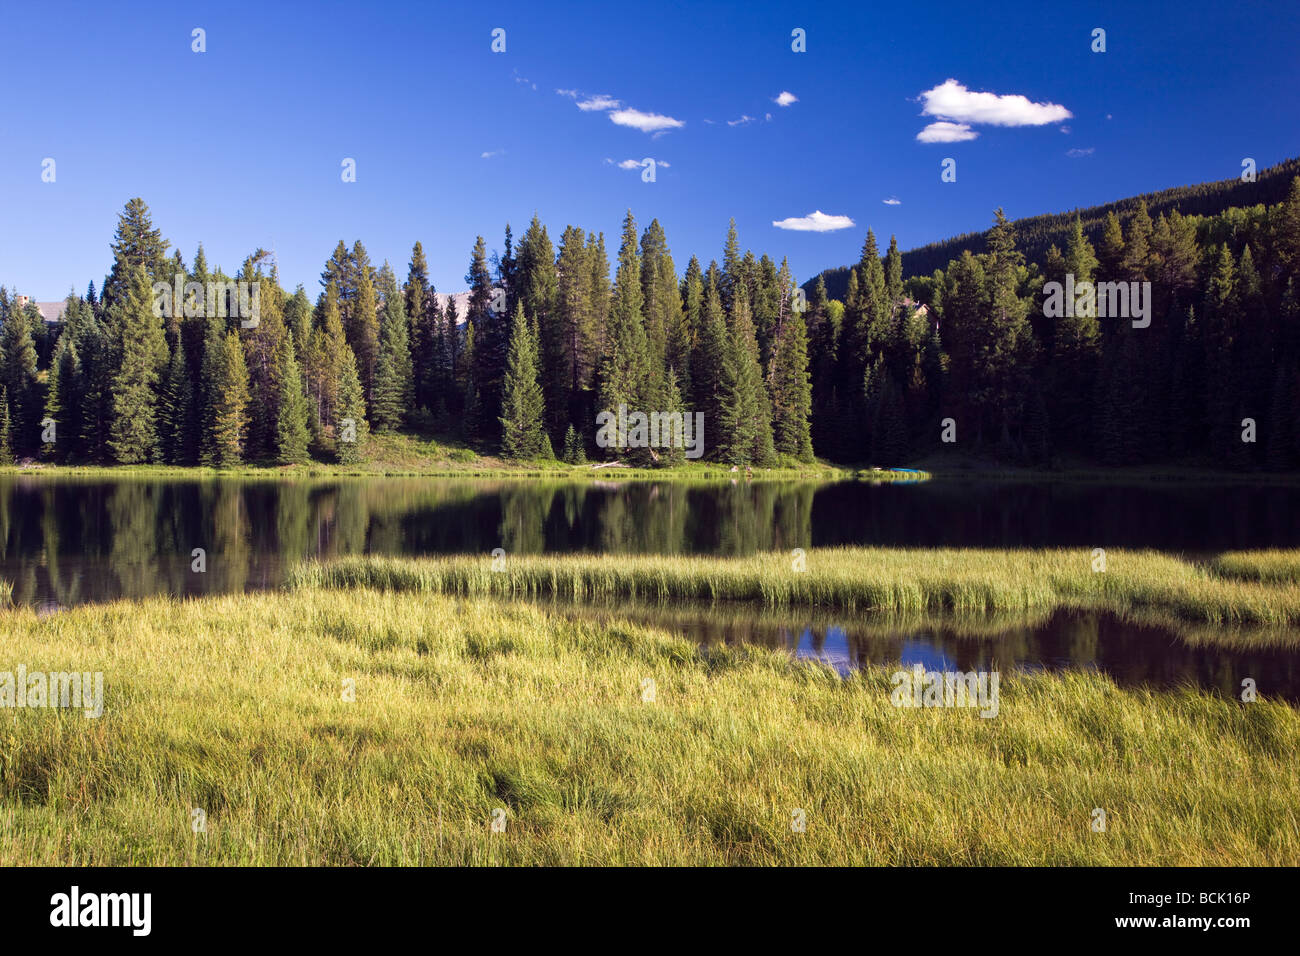 Nicholson Lake off of Slate River Road northwest of Crested Butte Colorado USA - Stock Image